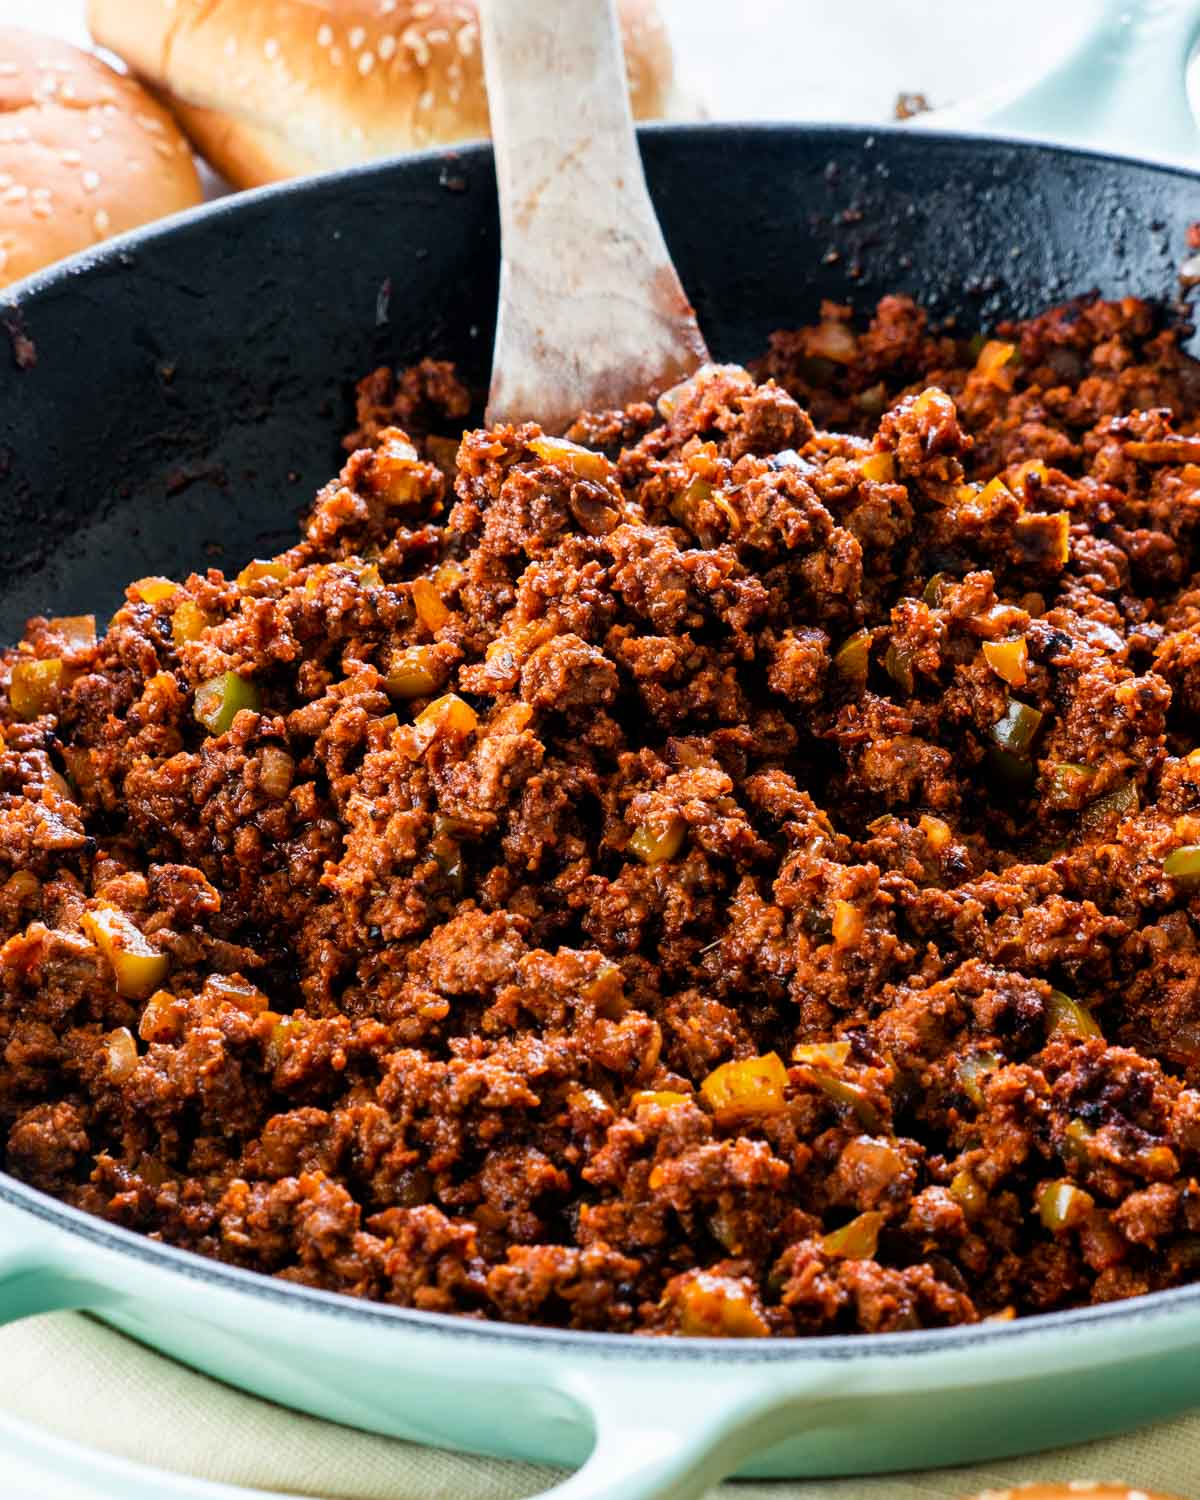 sideview shot of sloppy joe in a skillet with a spoon inside